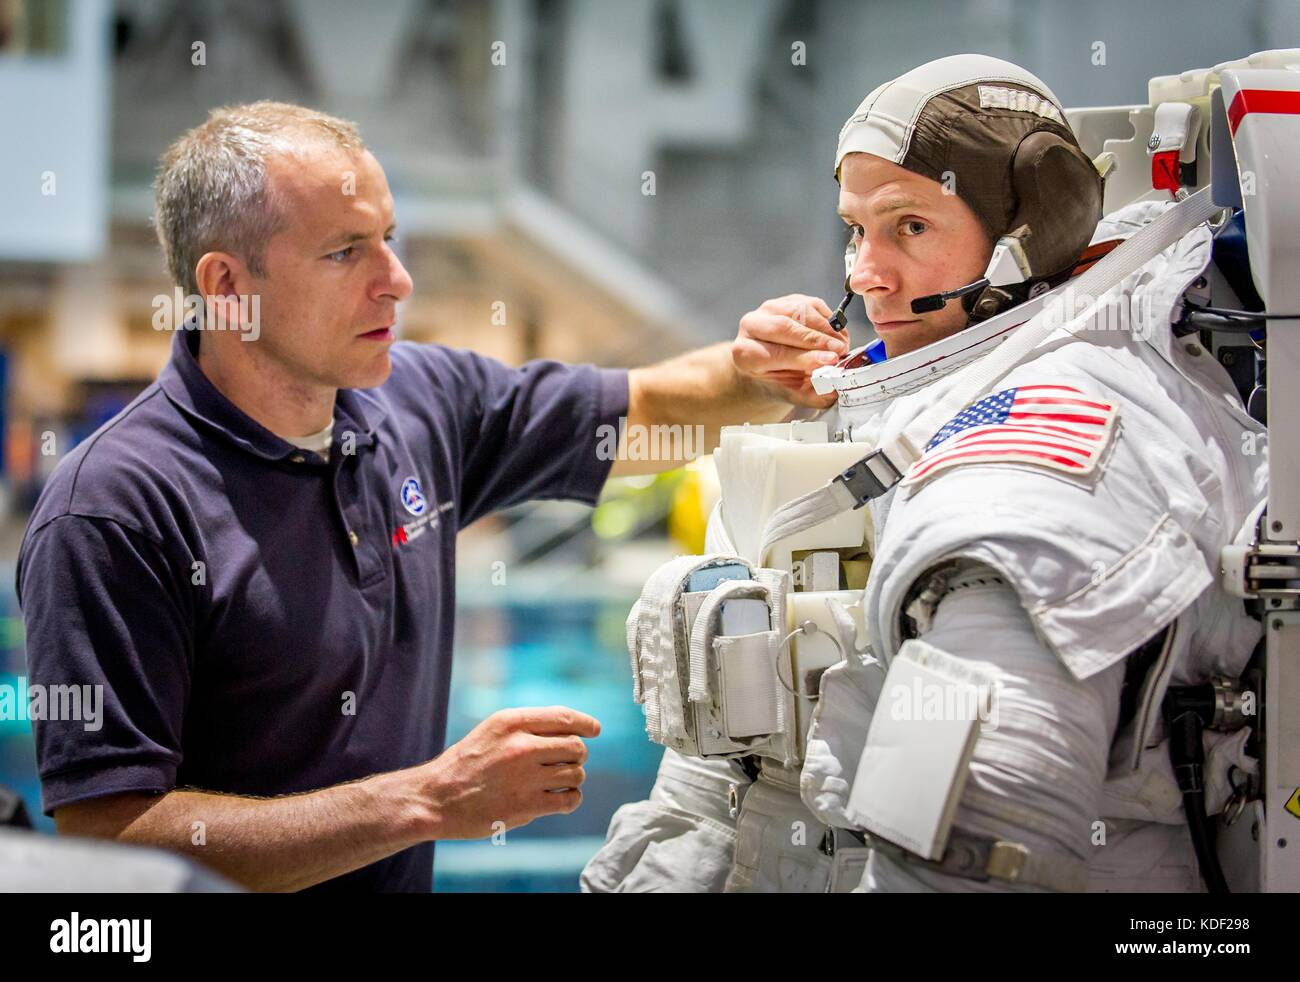 canadian space agency astronaut training - photo #44